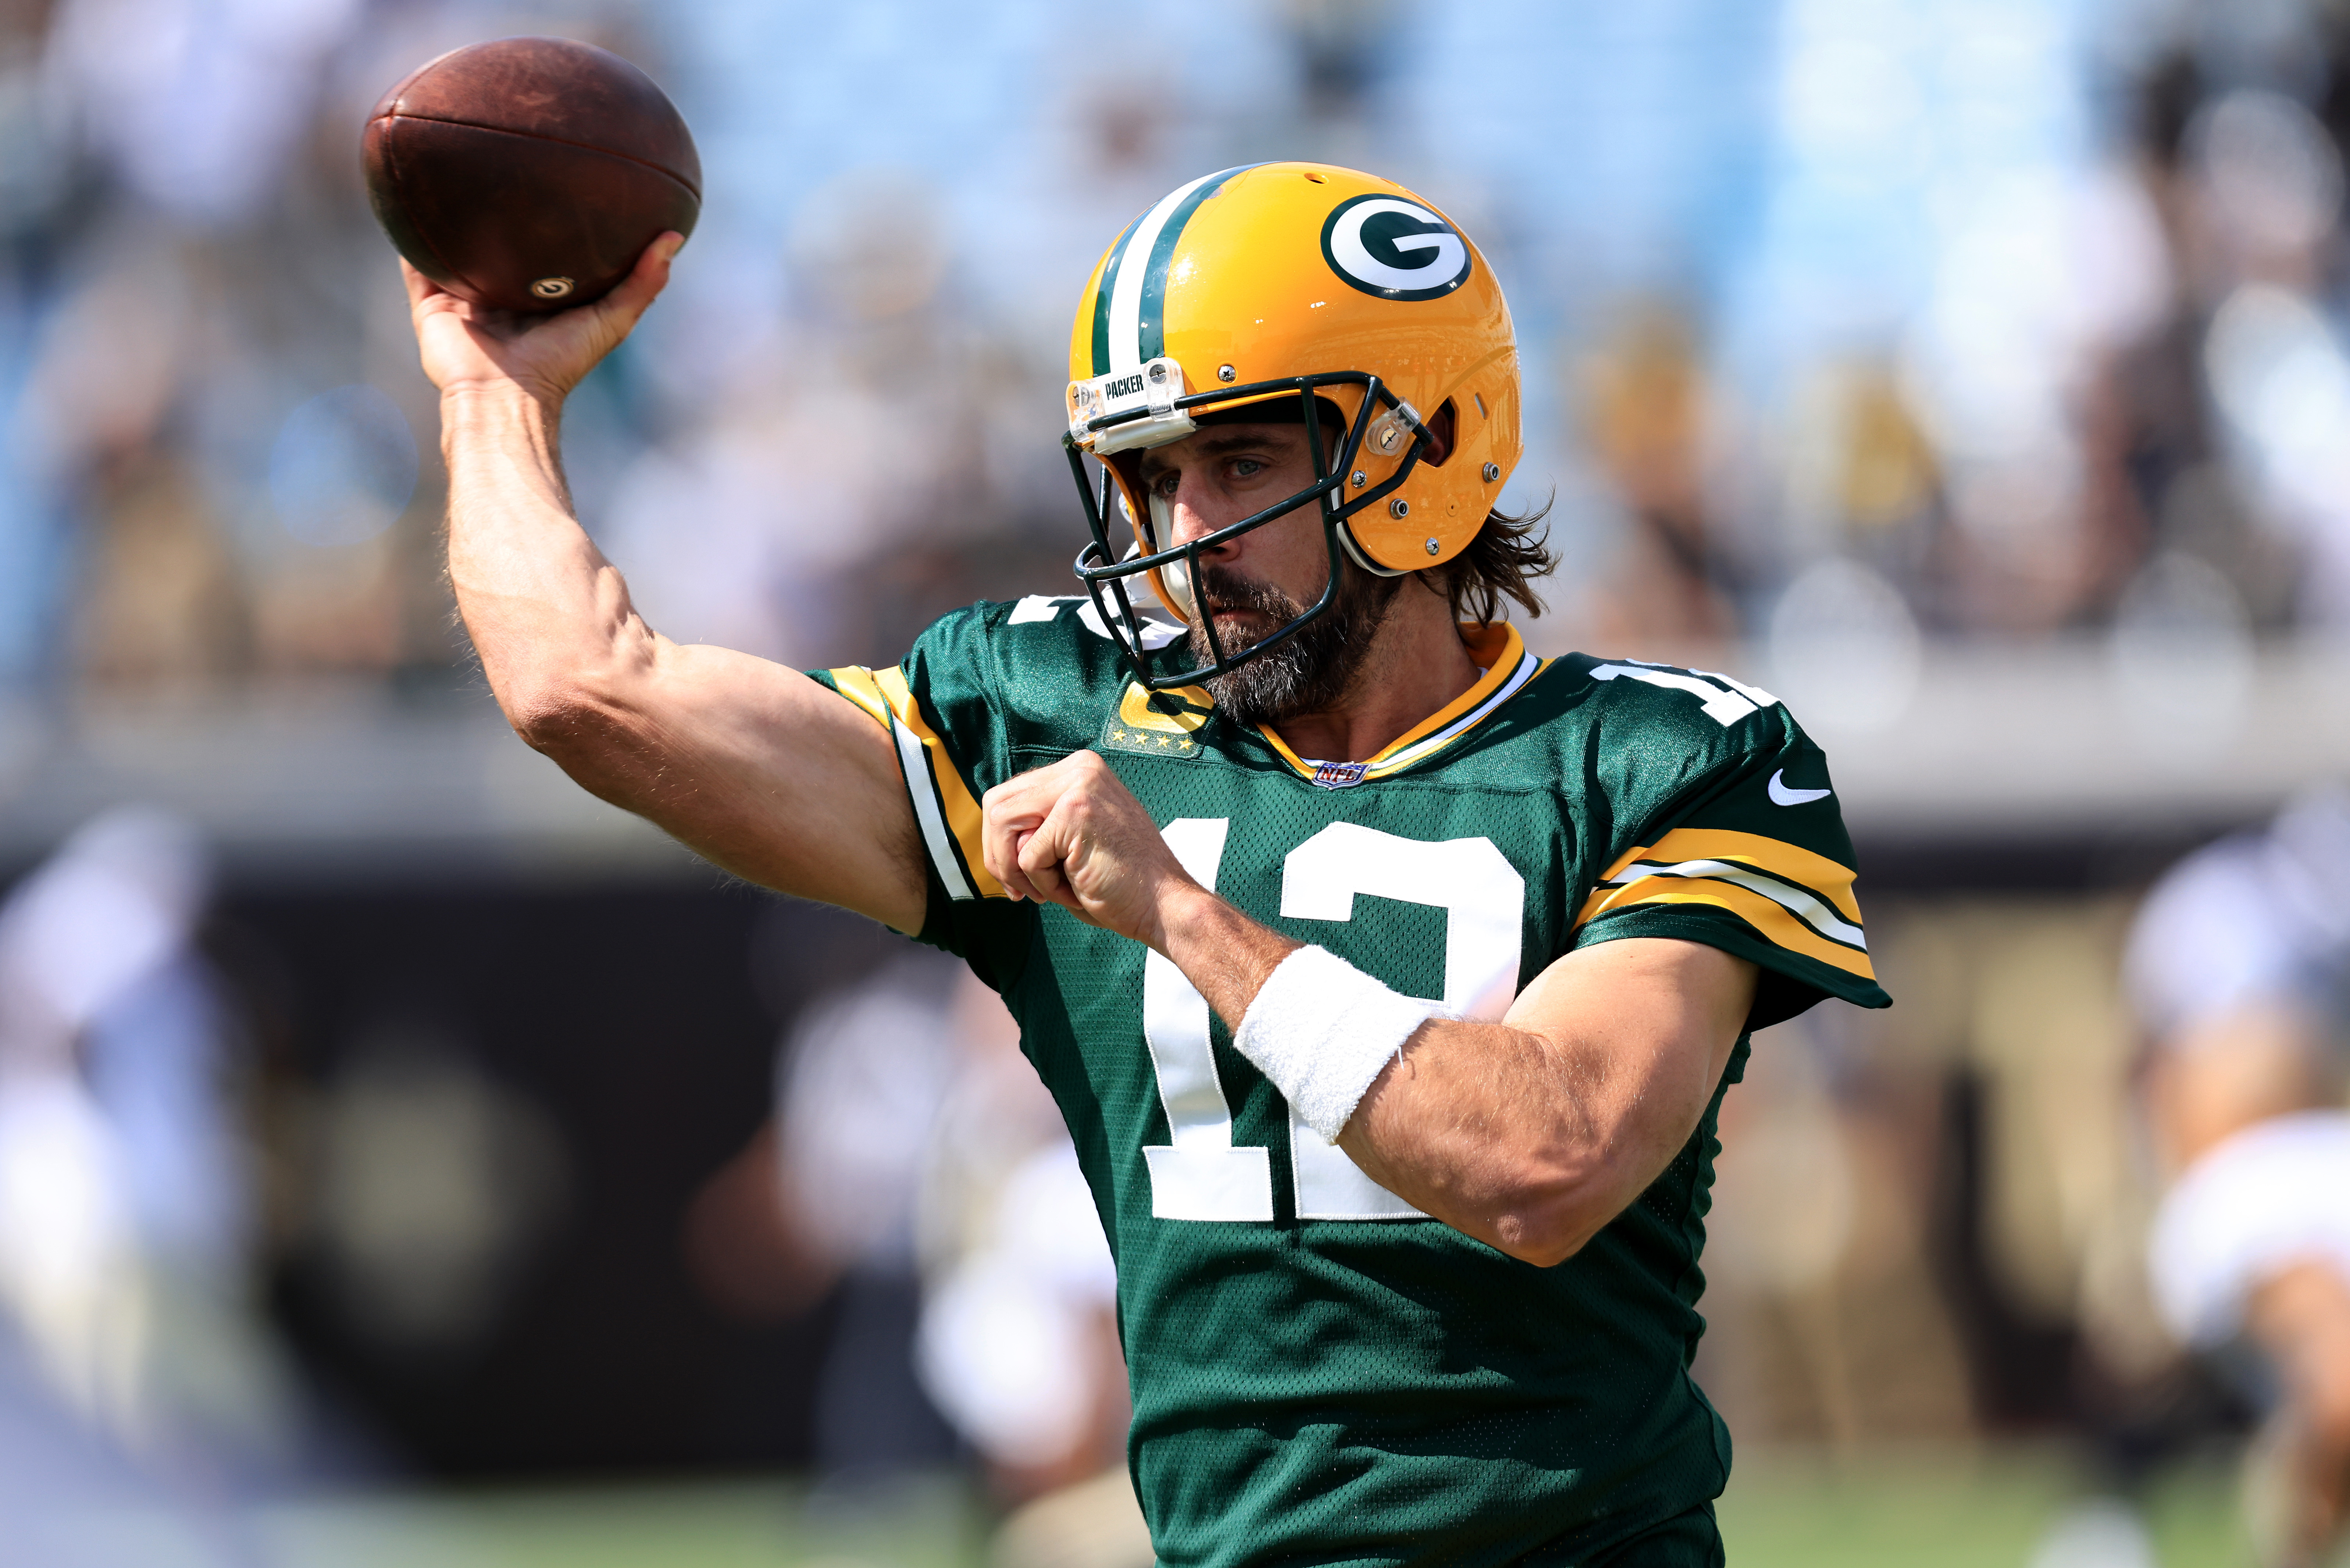 Aaron Rodgers of the Green Bay Packers warms up prior to the game against the New Orleans Saints at TIAA Bank Field on September 12, 2021 in Jacksonville, Florida.